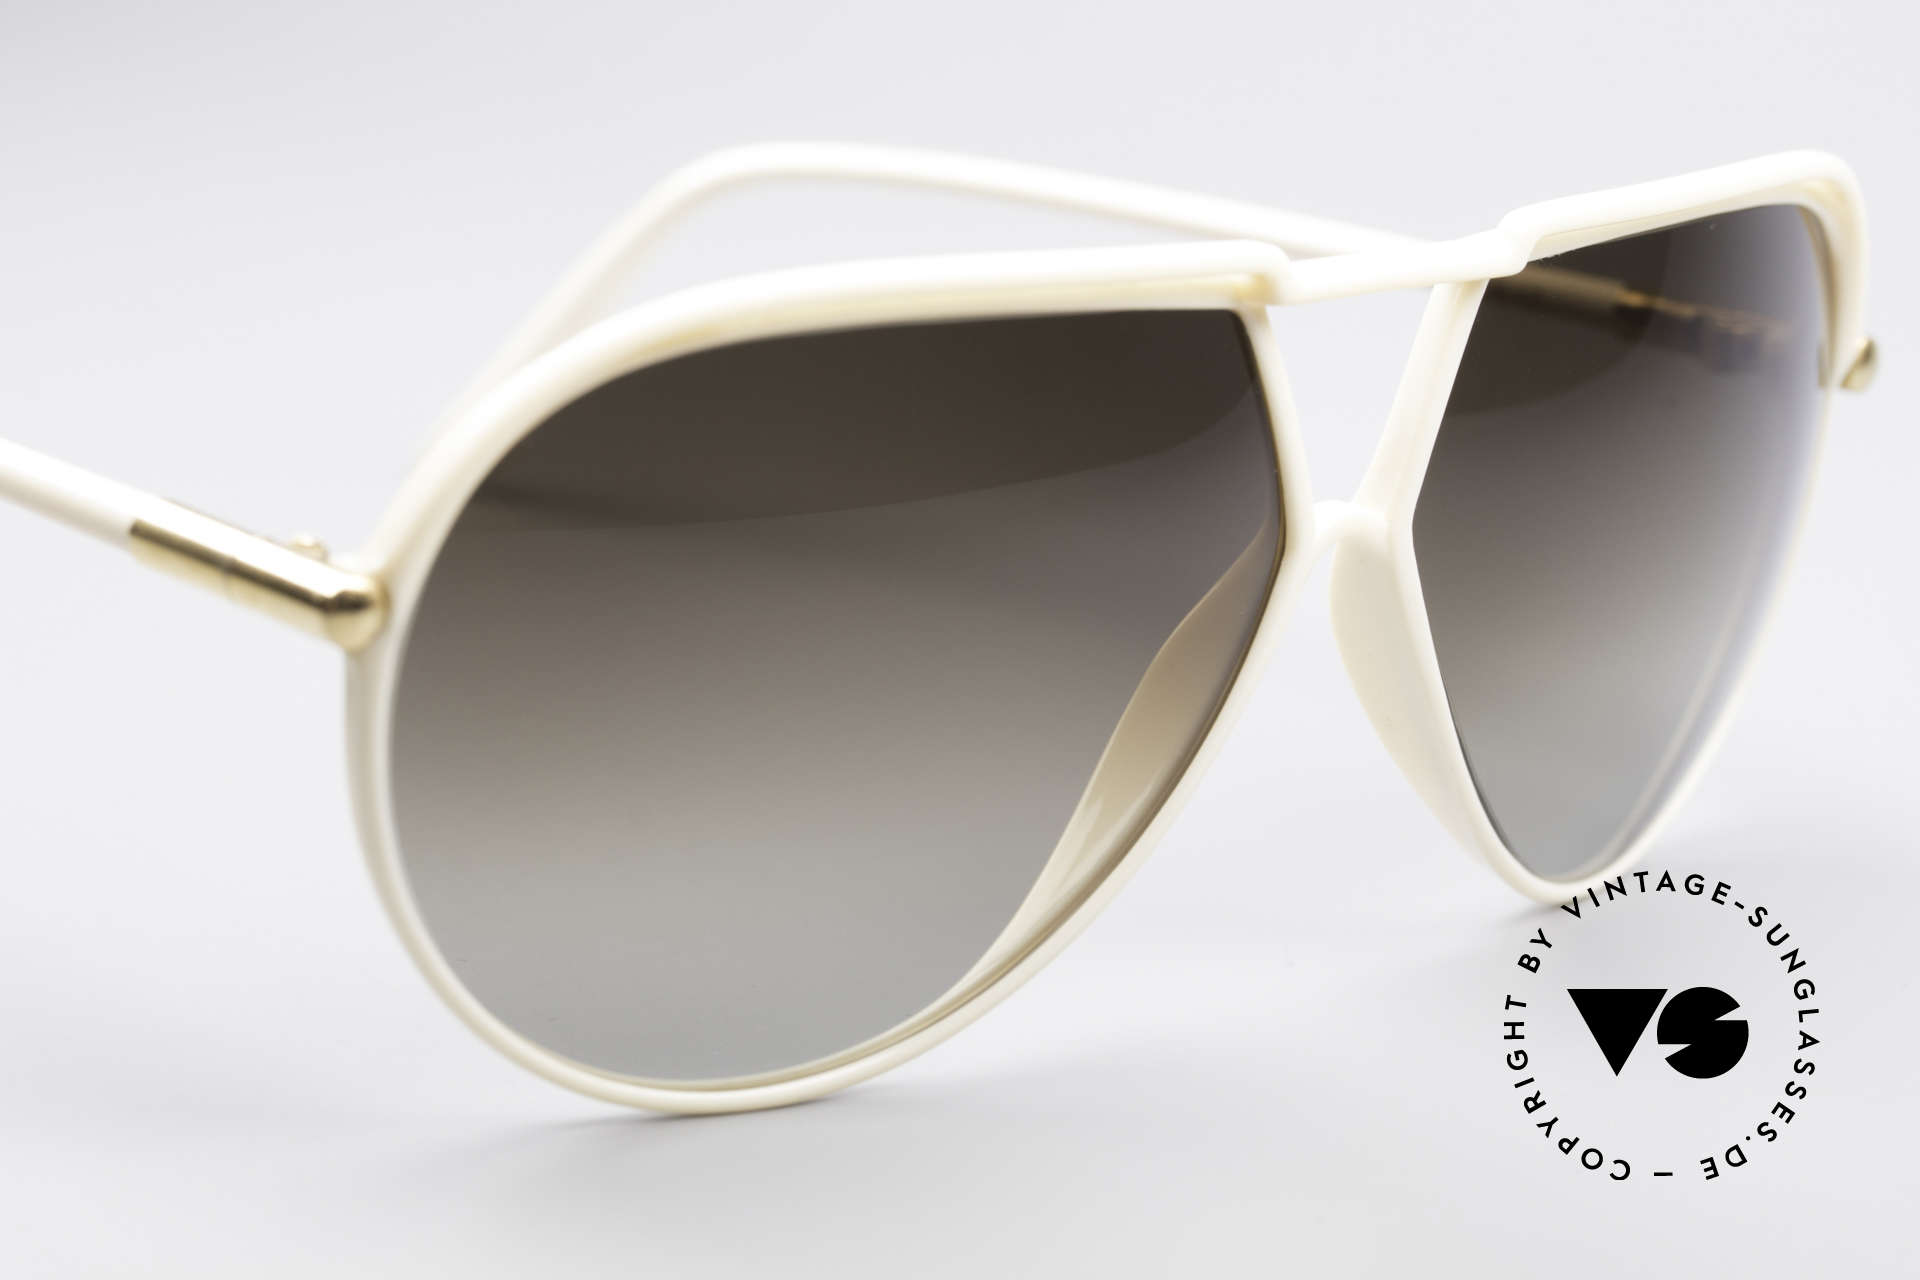 Yves Saint Laurent 8129 Y17 70's Aviator Shades, not from a present collection, but true 1970's shades, Made for Men and Women